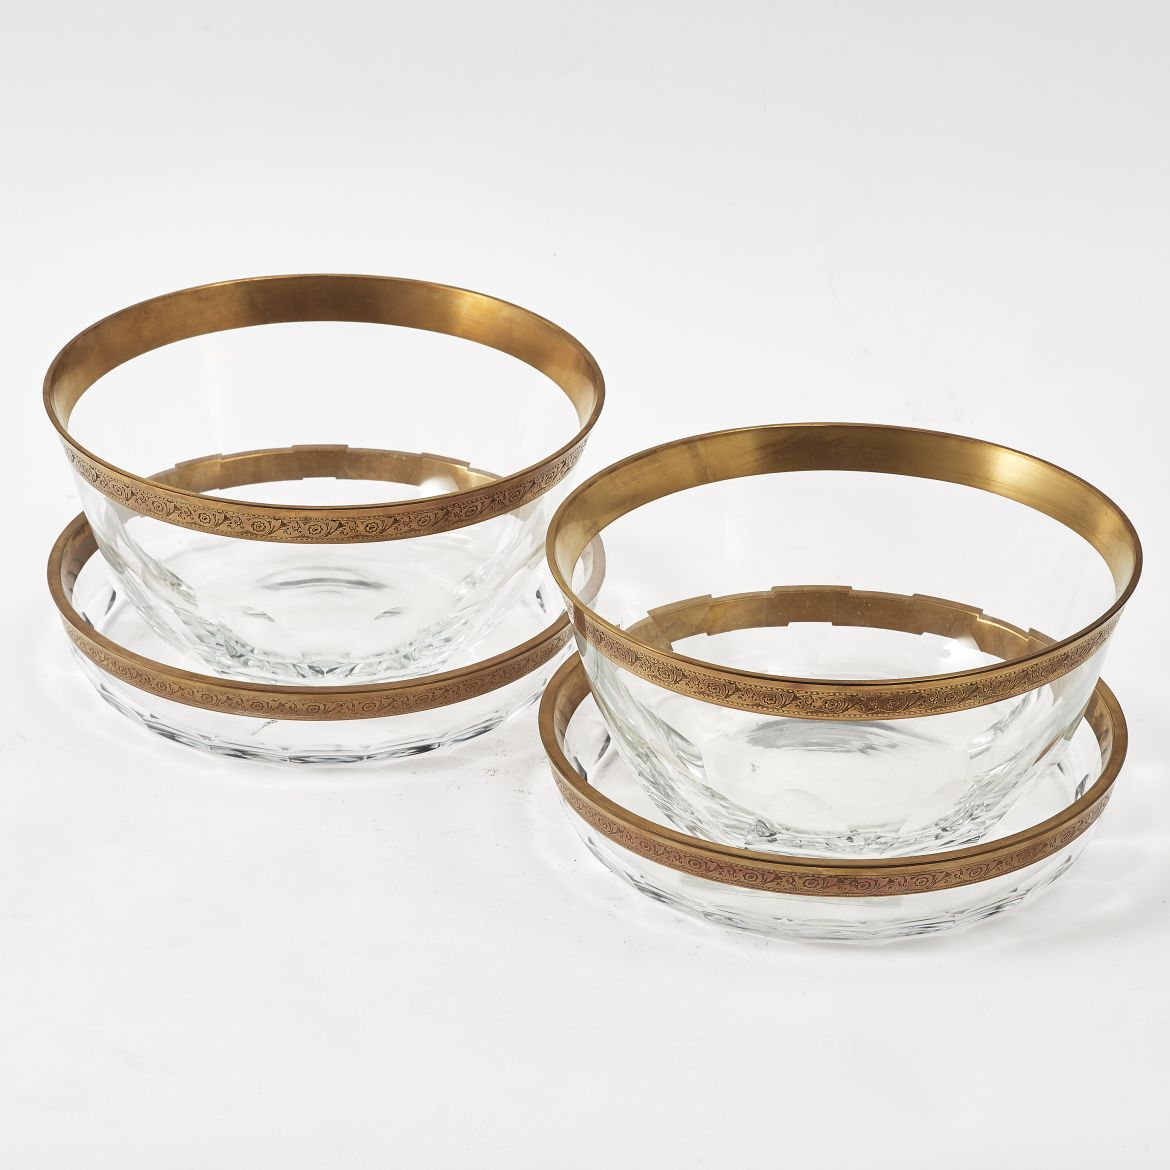 Gilded Crystal Dishes & Bowls